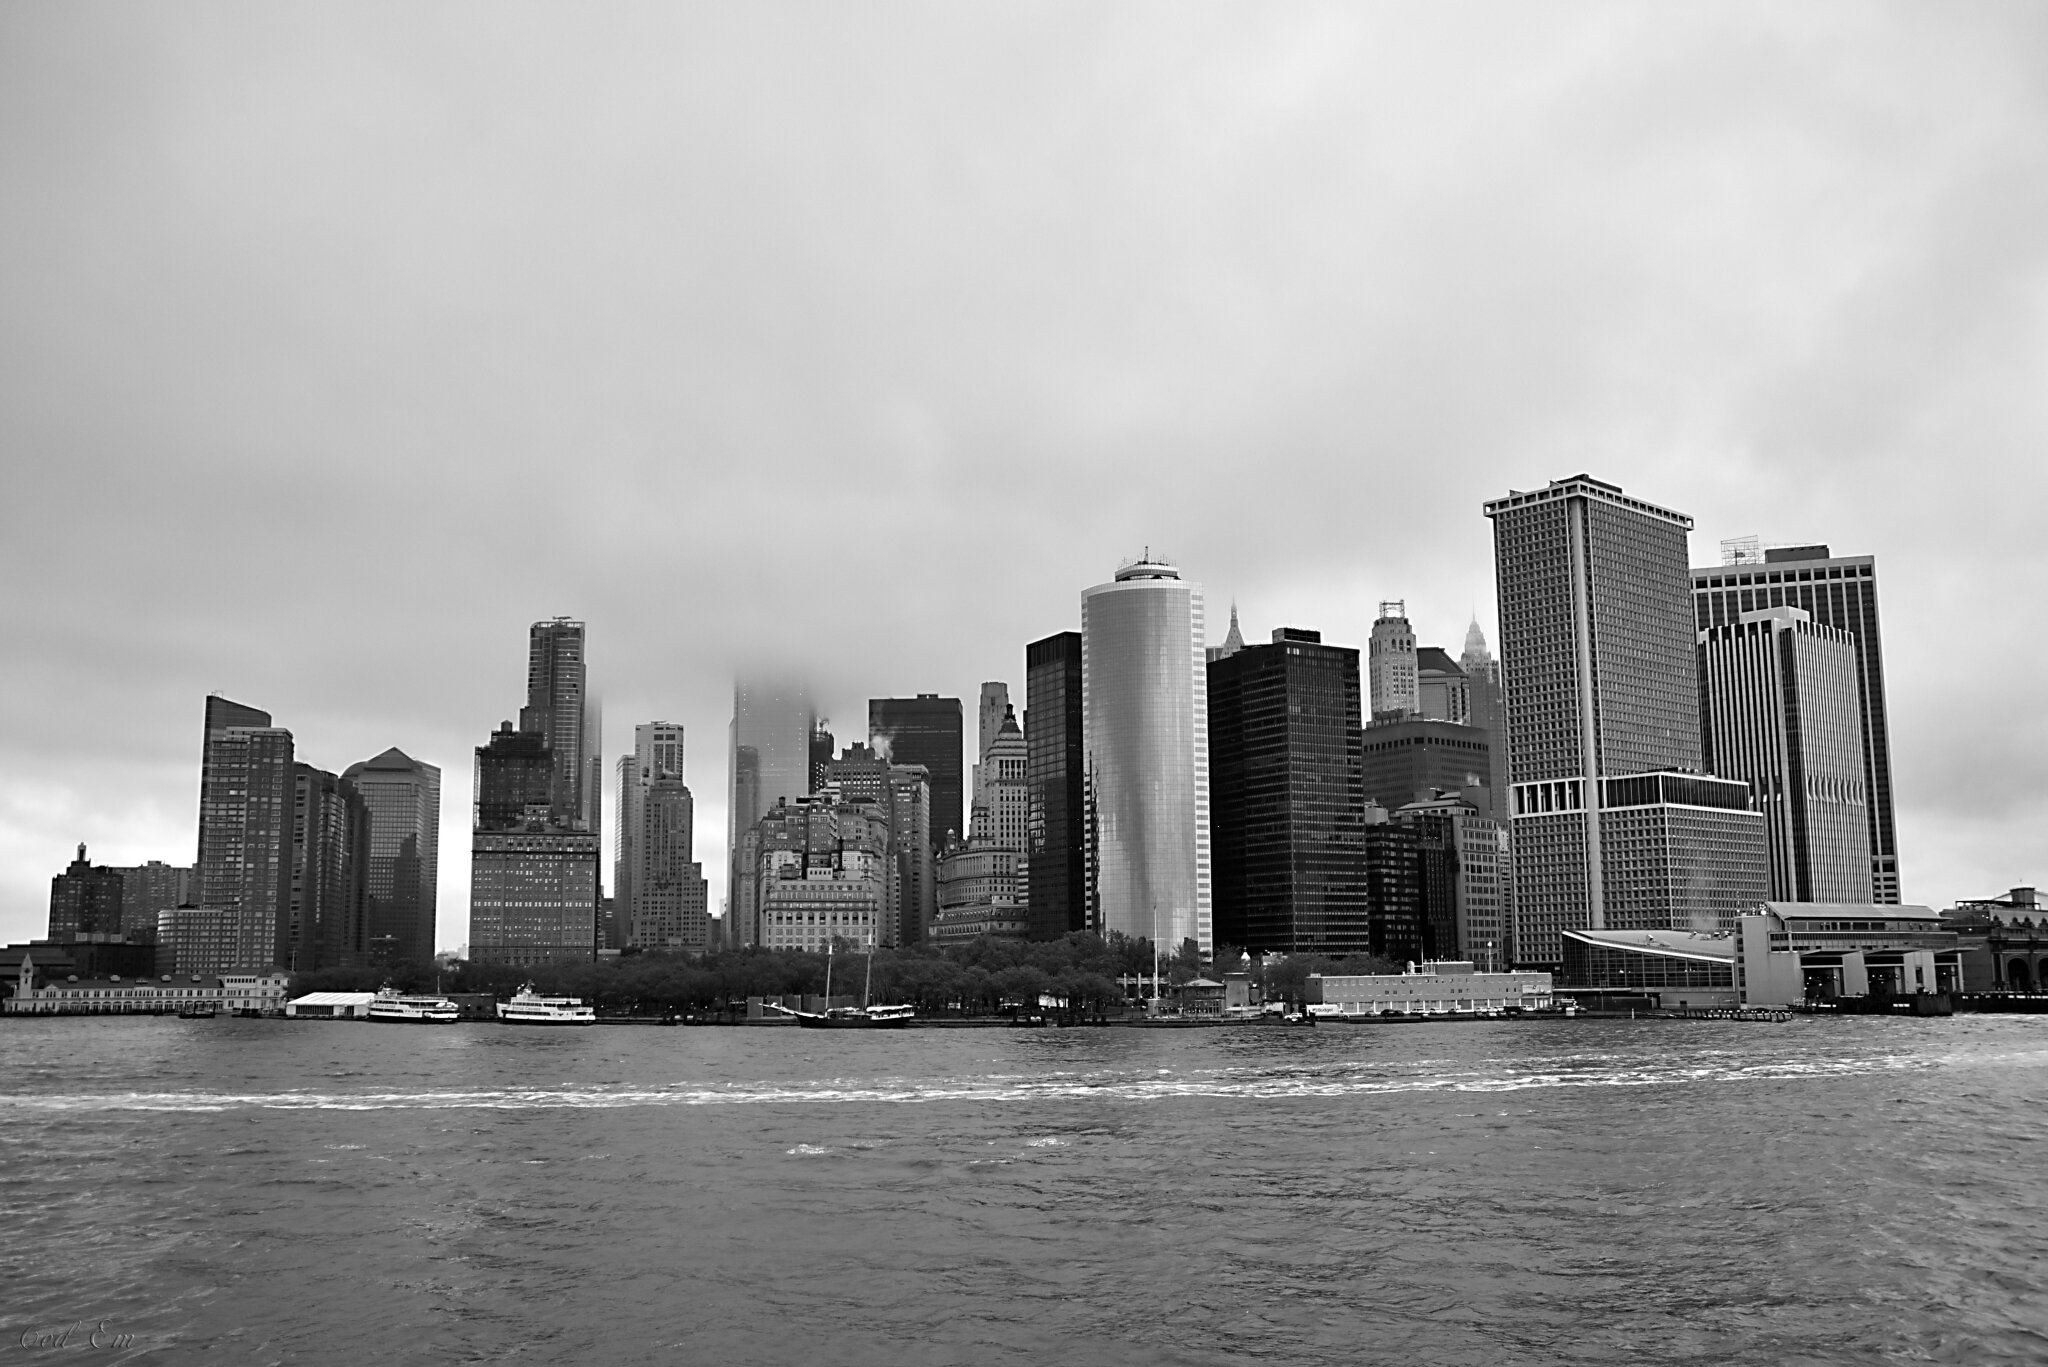 On the ferry (3)